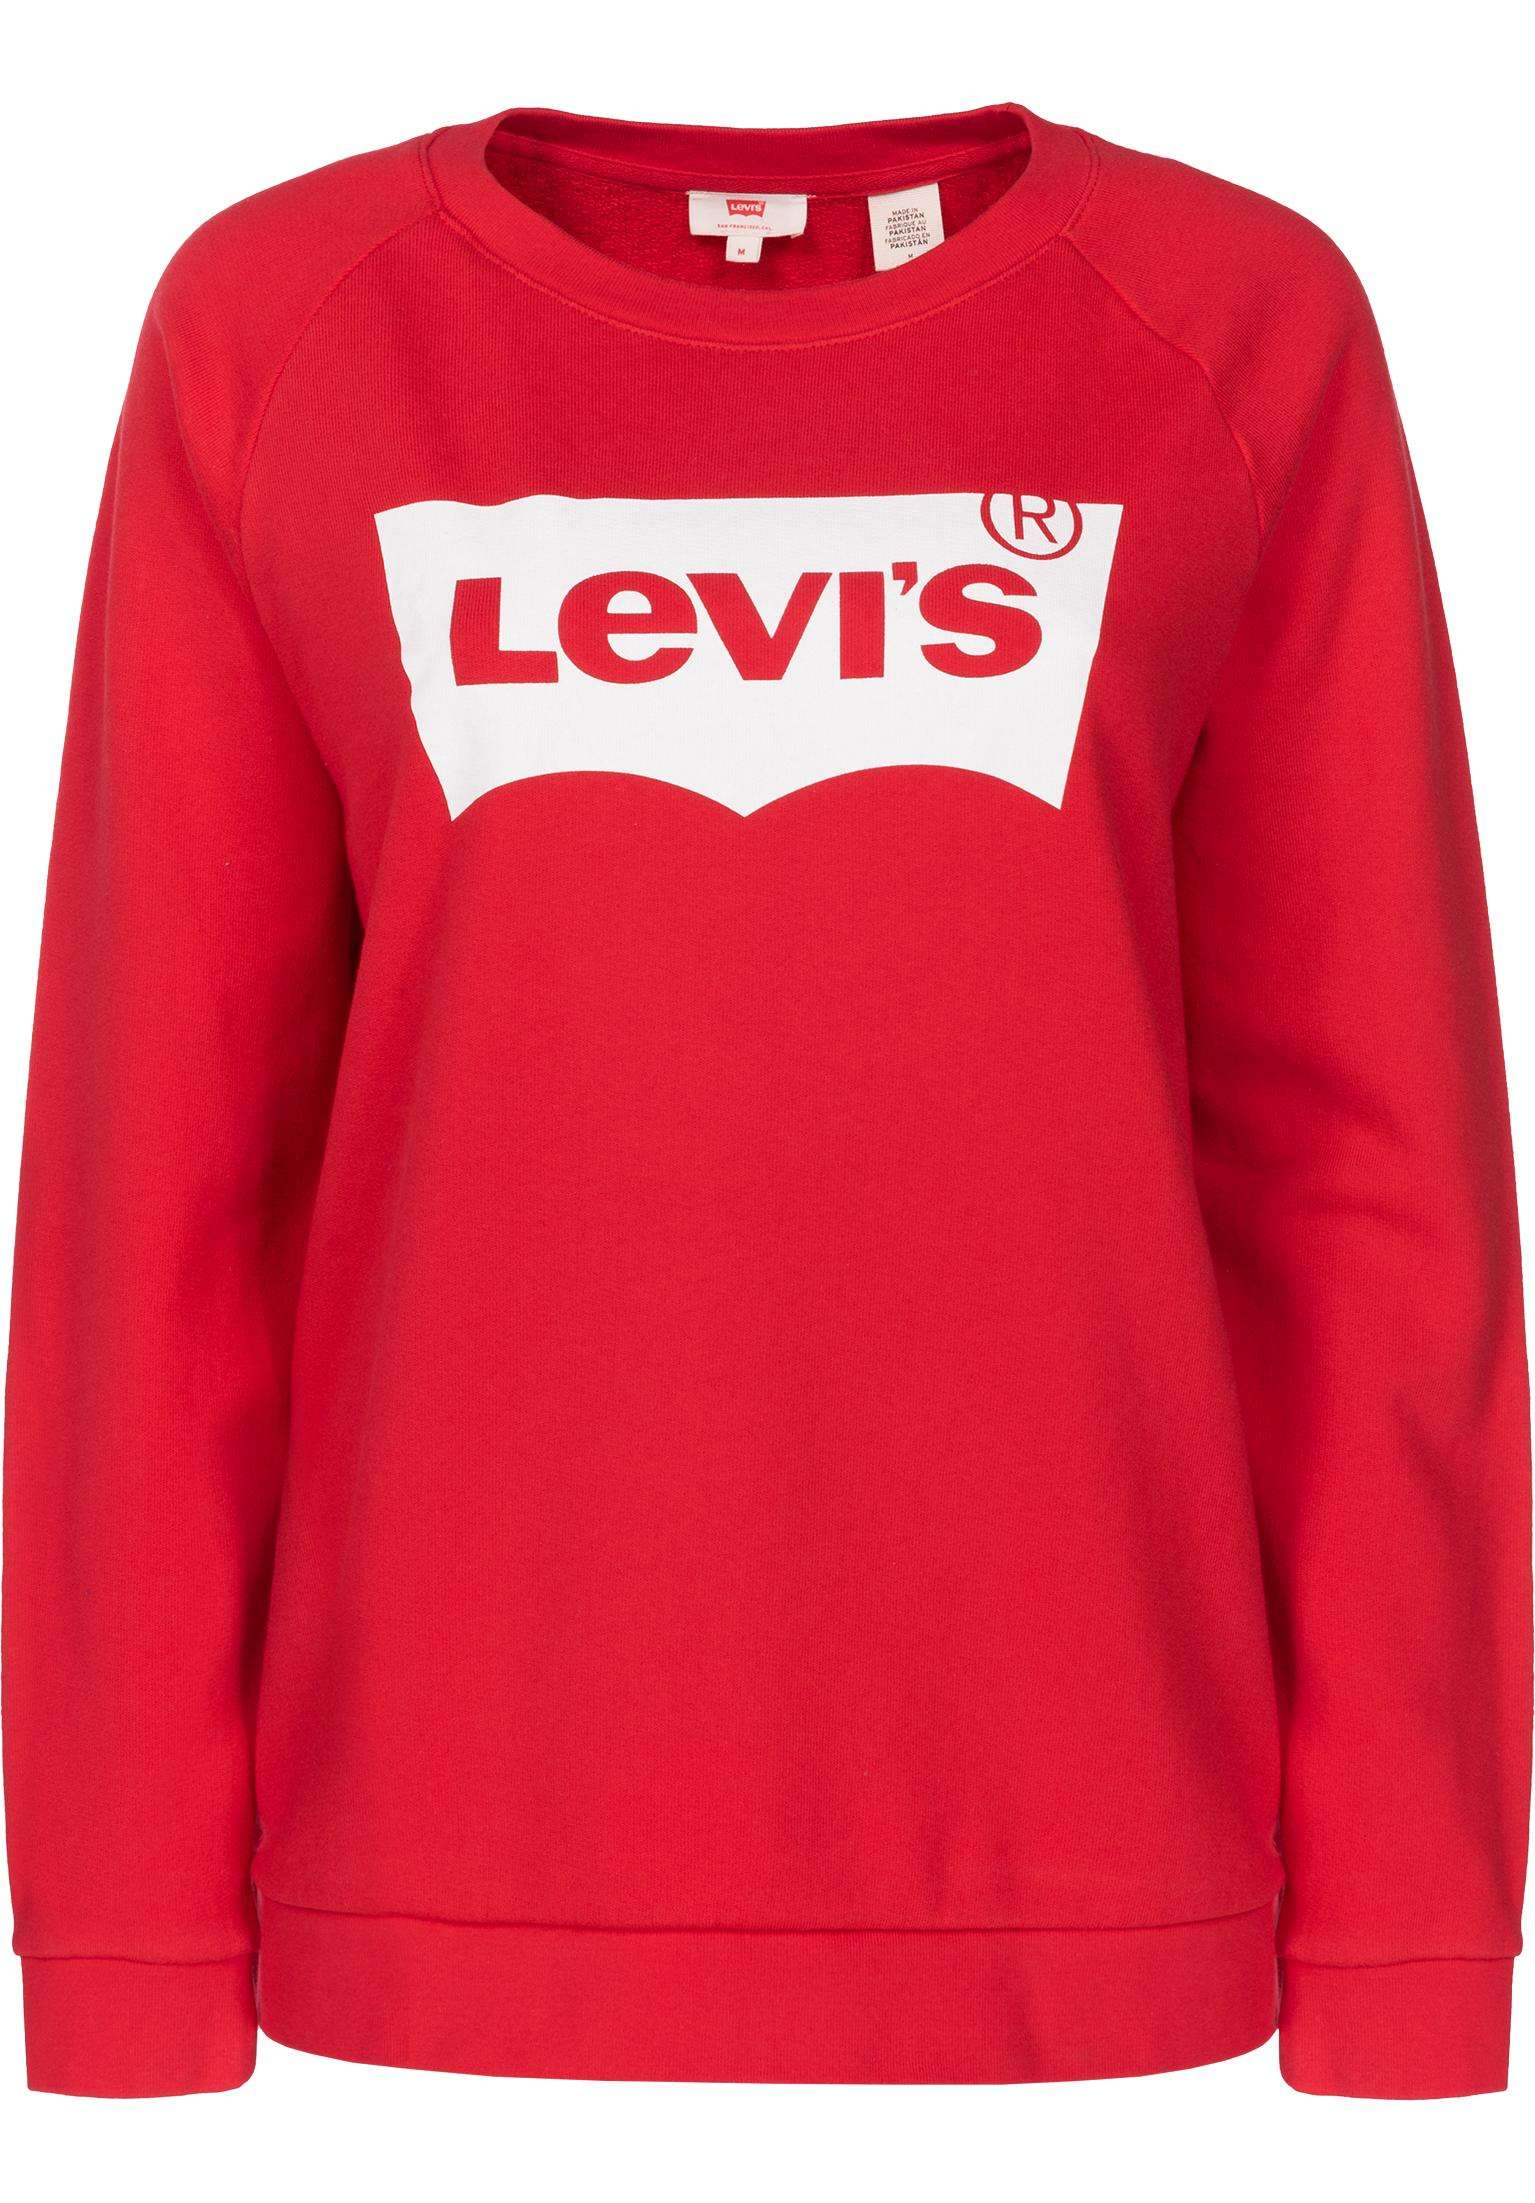 E Relaxed Donna Graphic Red Pullover Levi's Da Felpe Titus In UtqpxtR